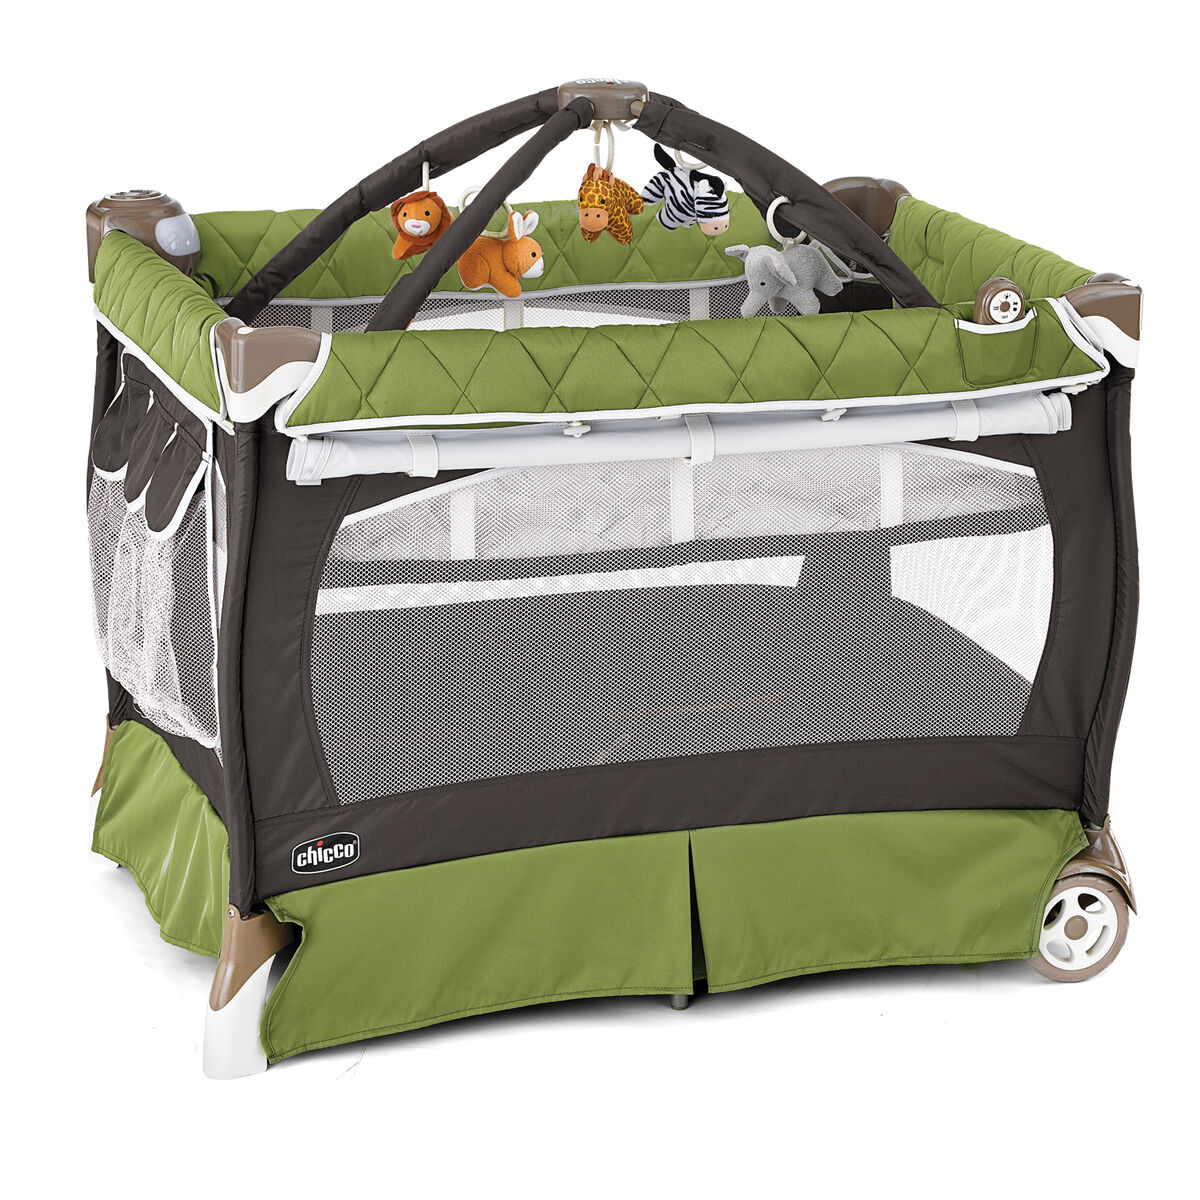 Chicco Lullaby Lx Playard Elm